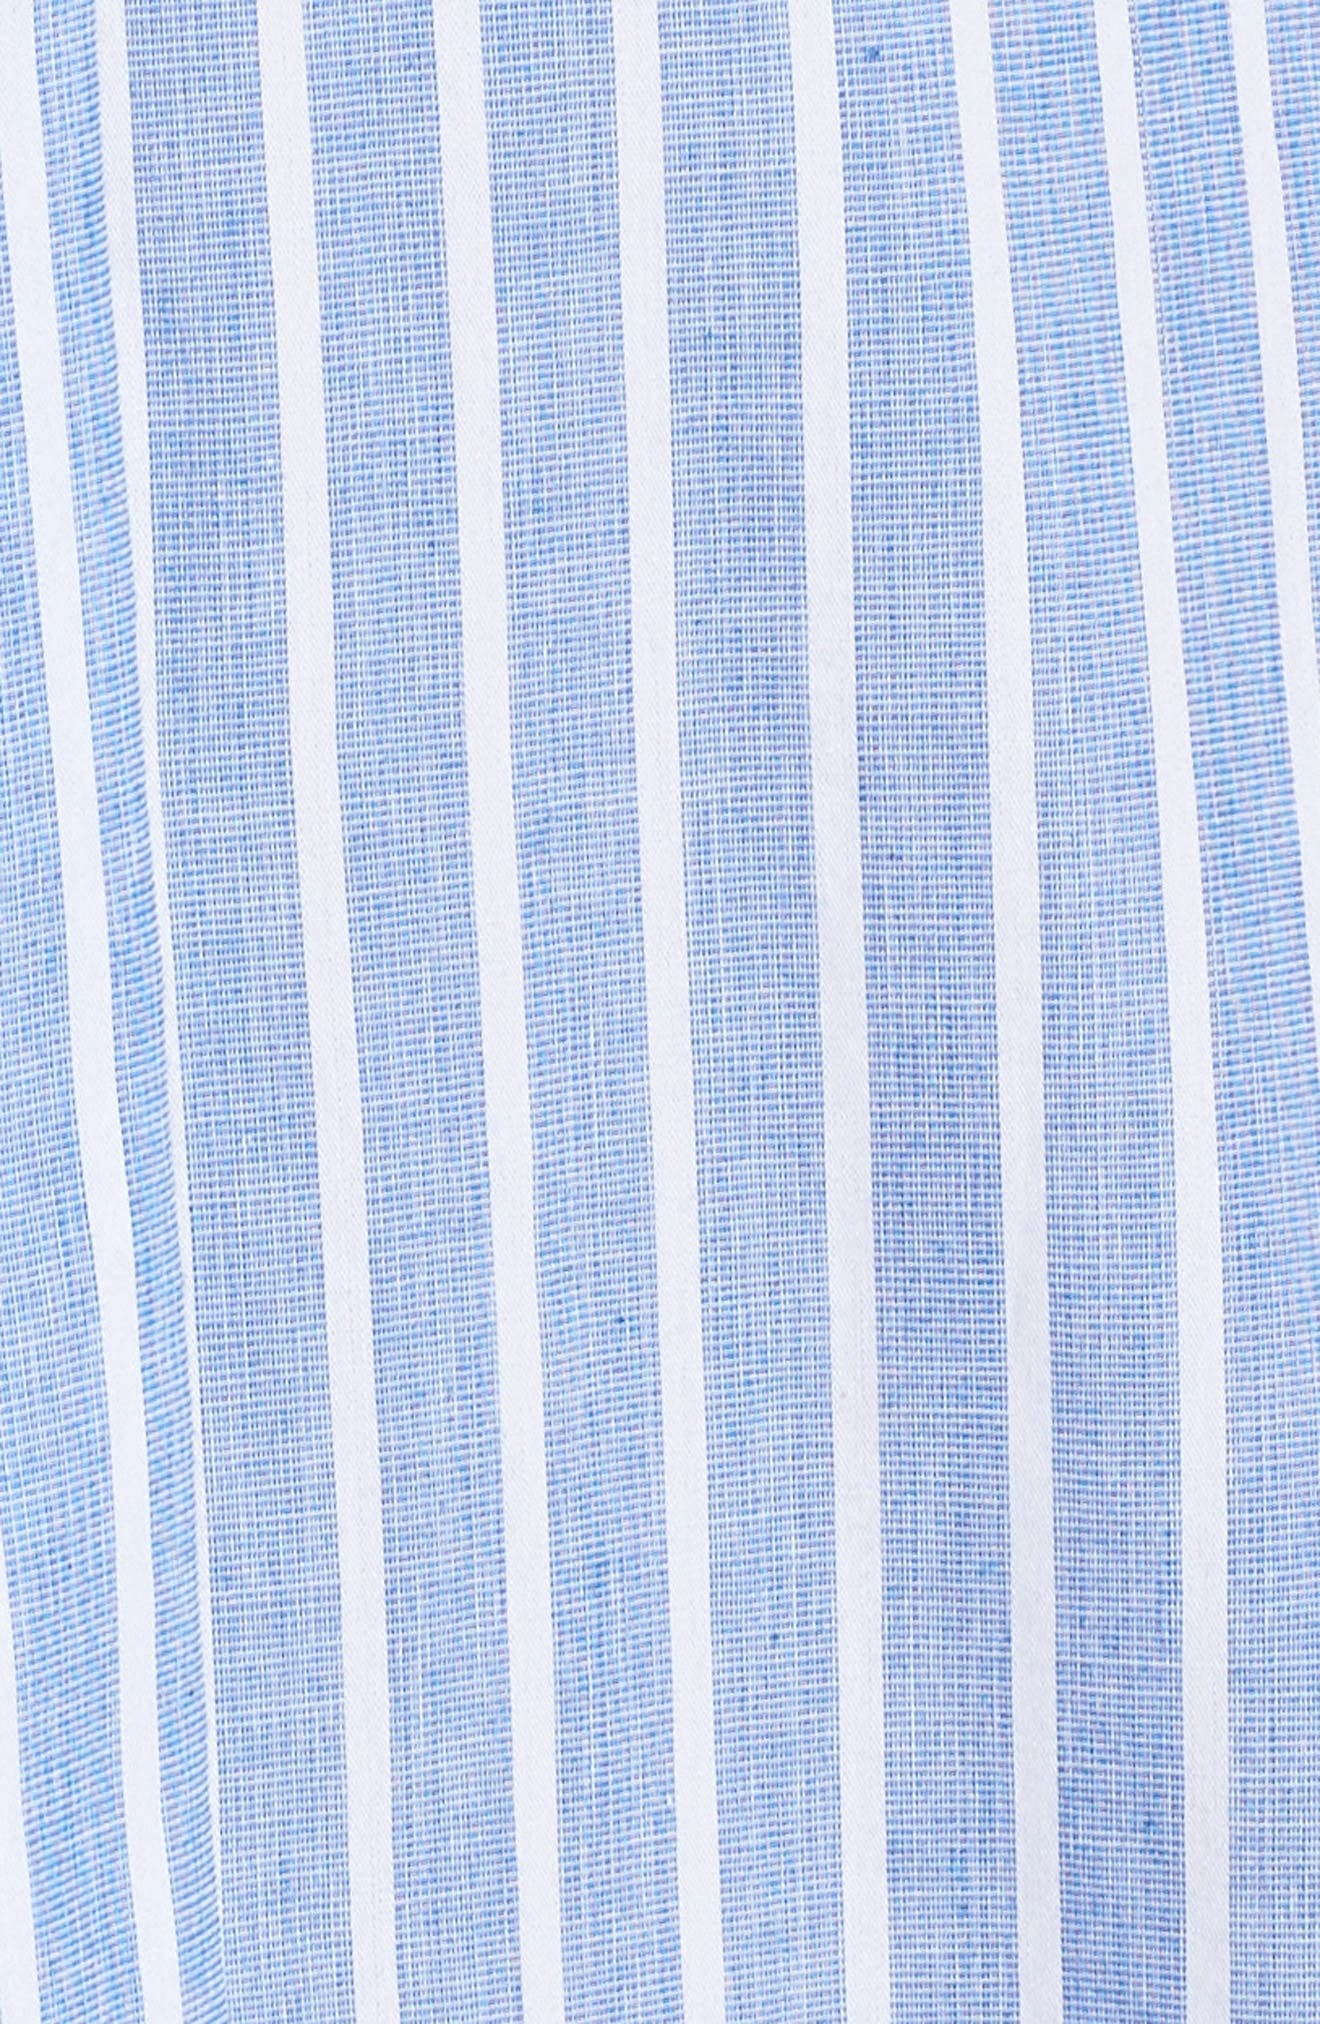 Stripe Shirtdress,                             Alternate thumbnail 6, color,                             Blue/ White